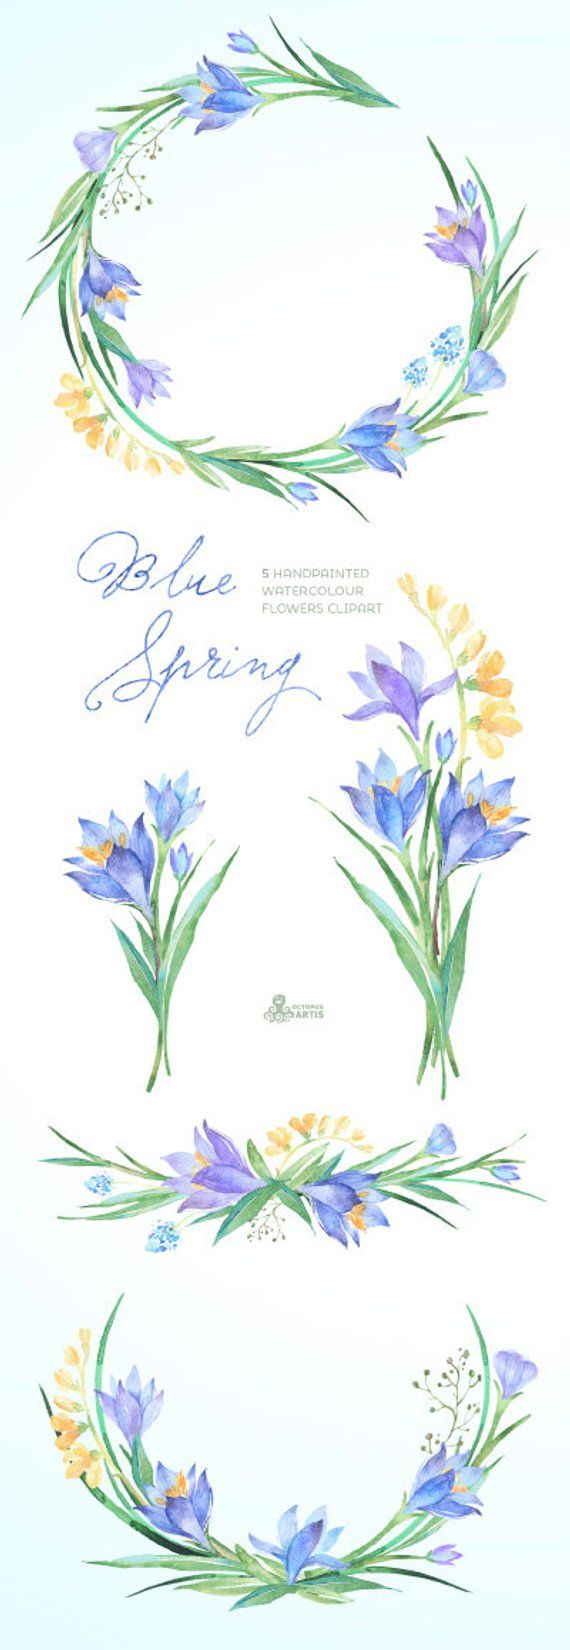 Blue Spring Watercolour Flowers Clipart Handpainted Watercolor